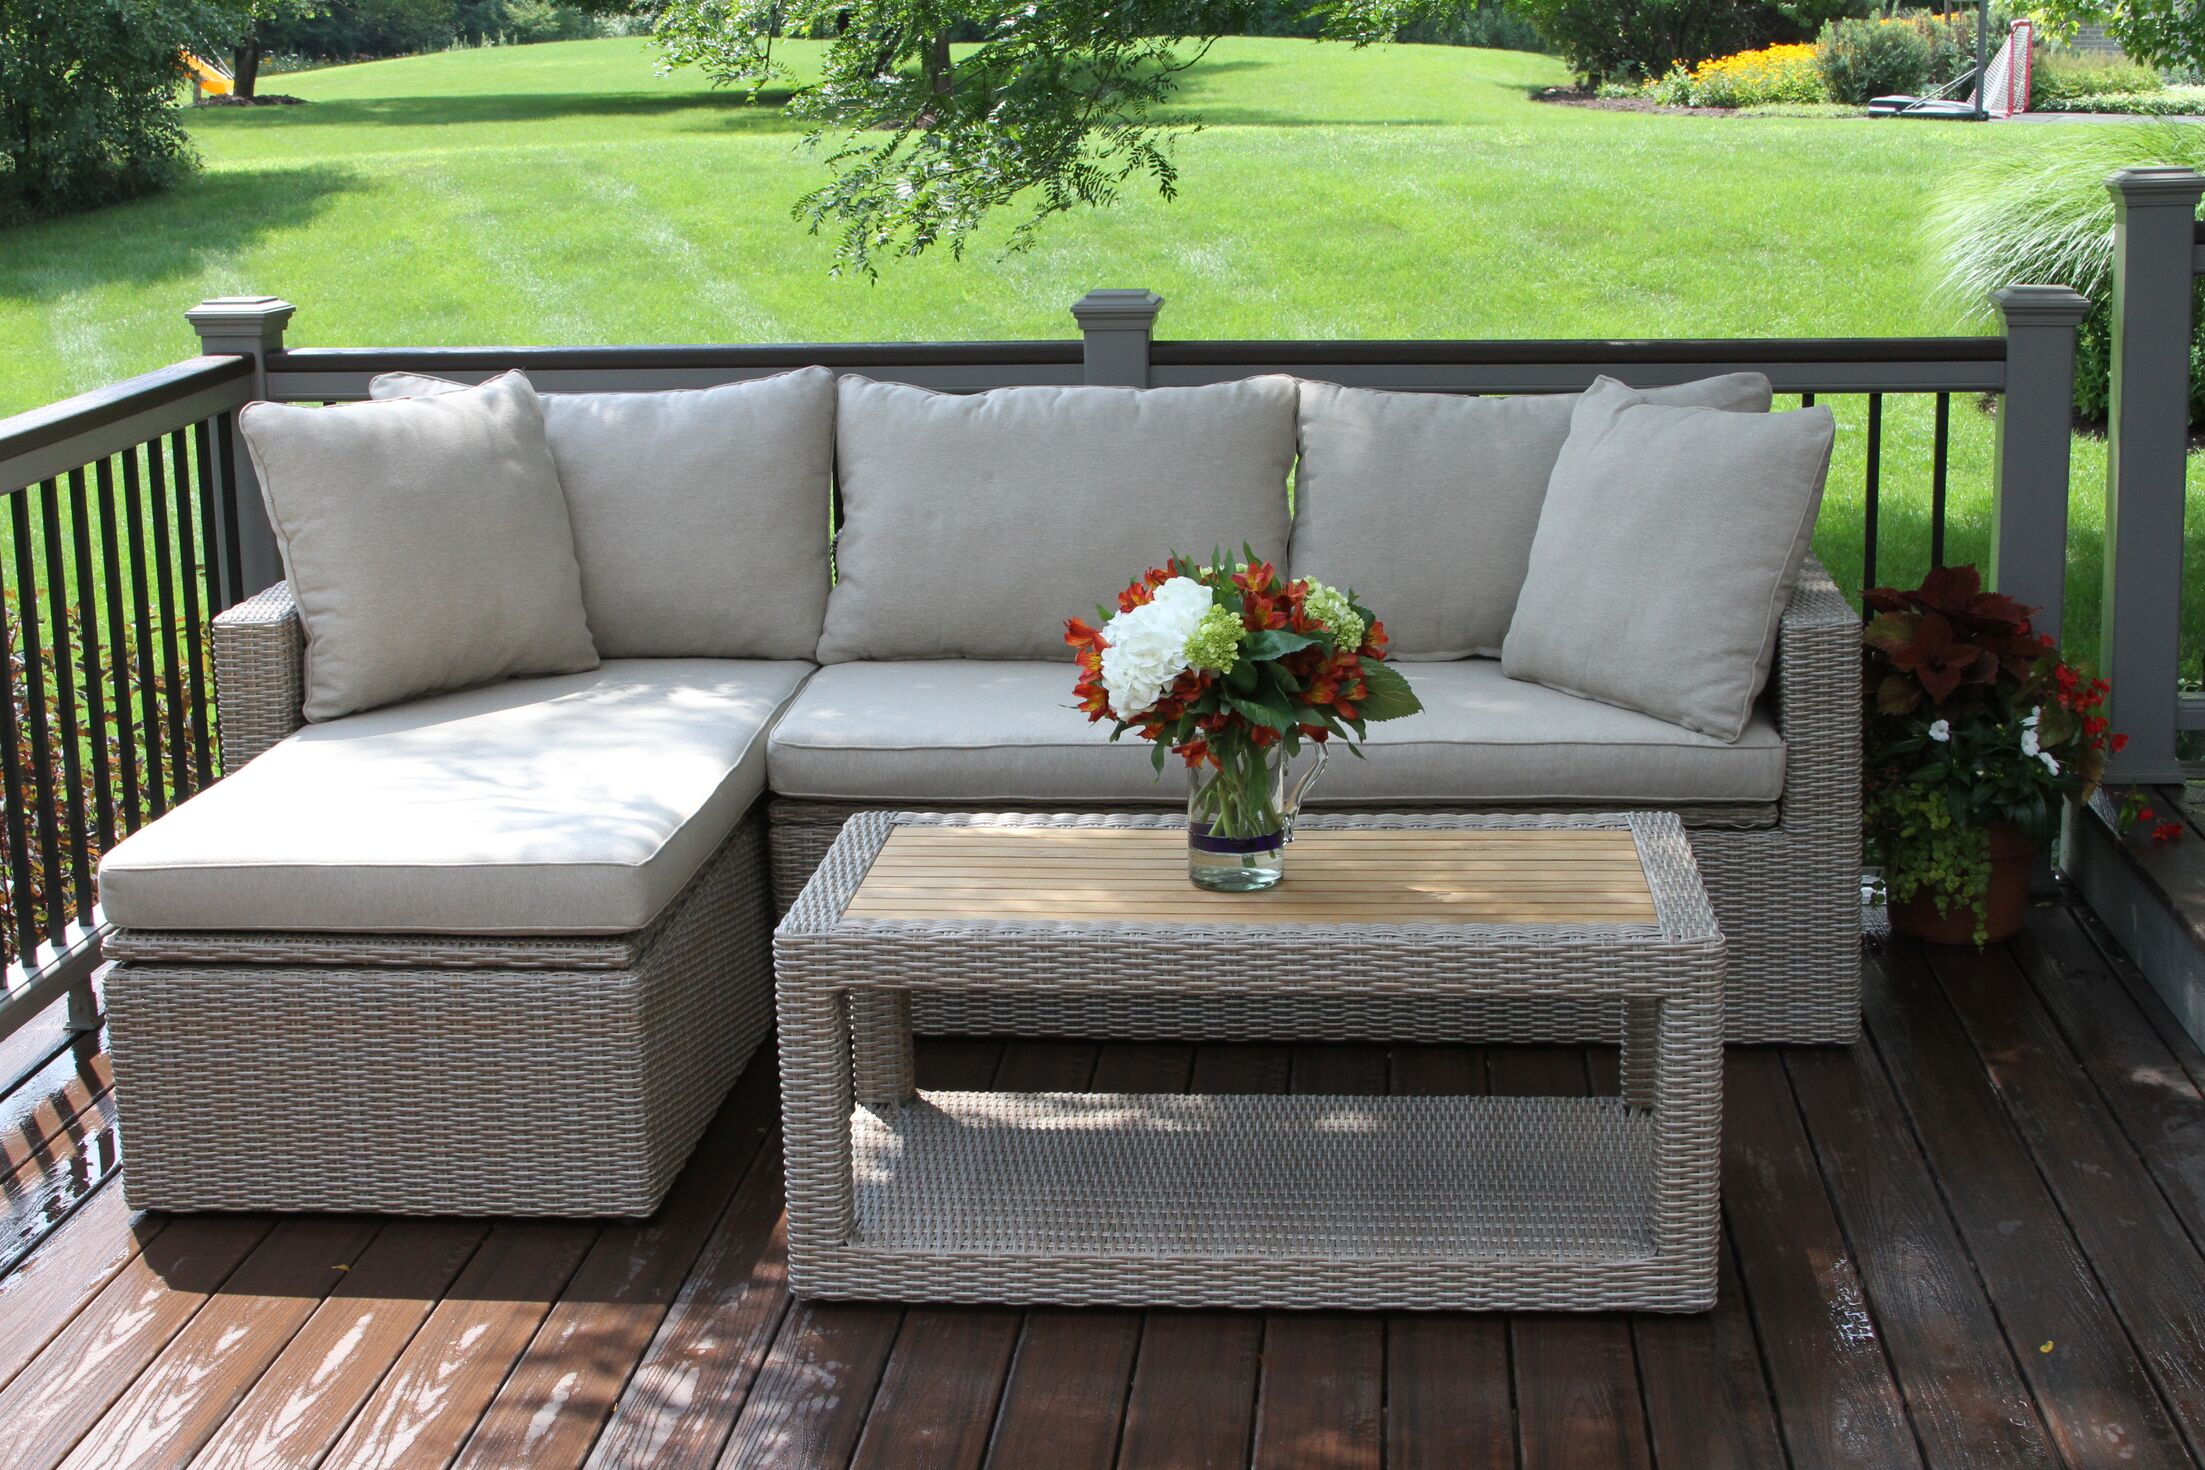 Dillon 3 Piece Teak Sectional Set with Cushions